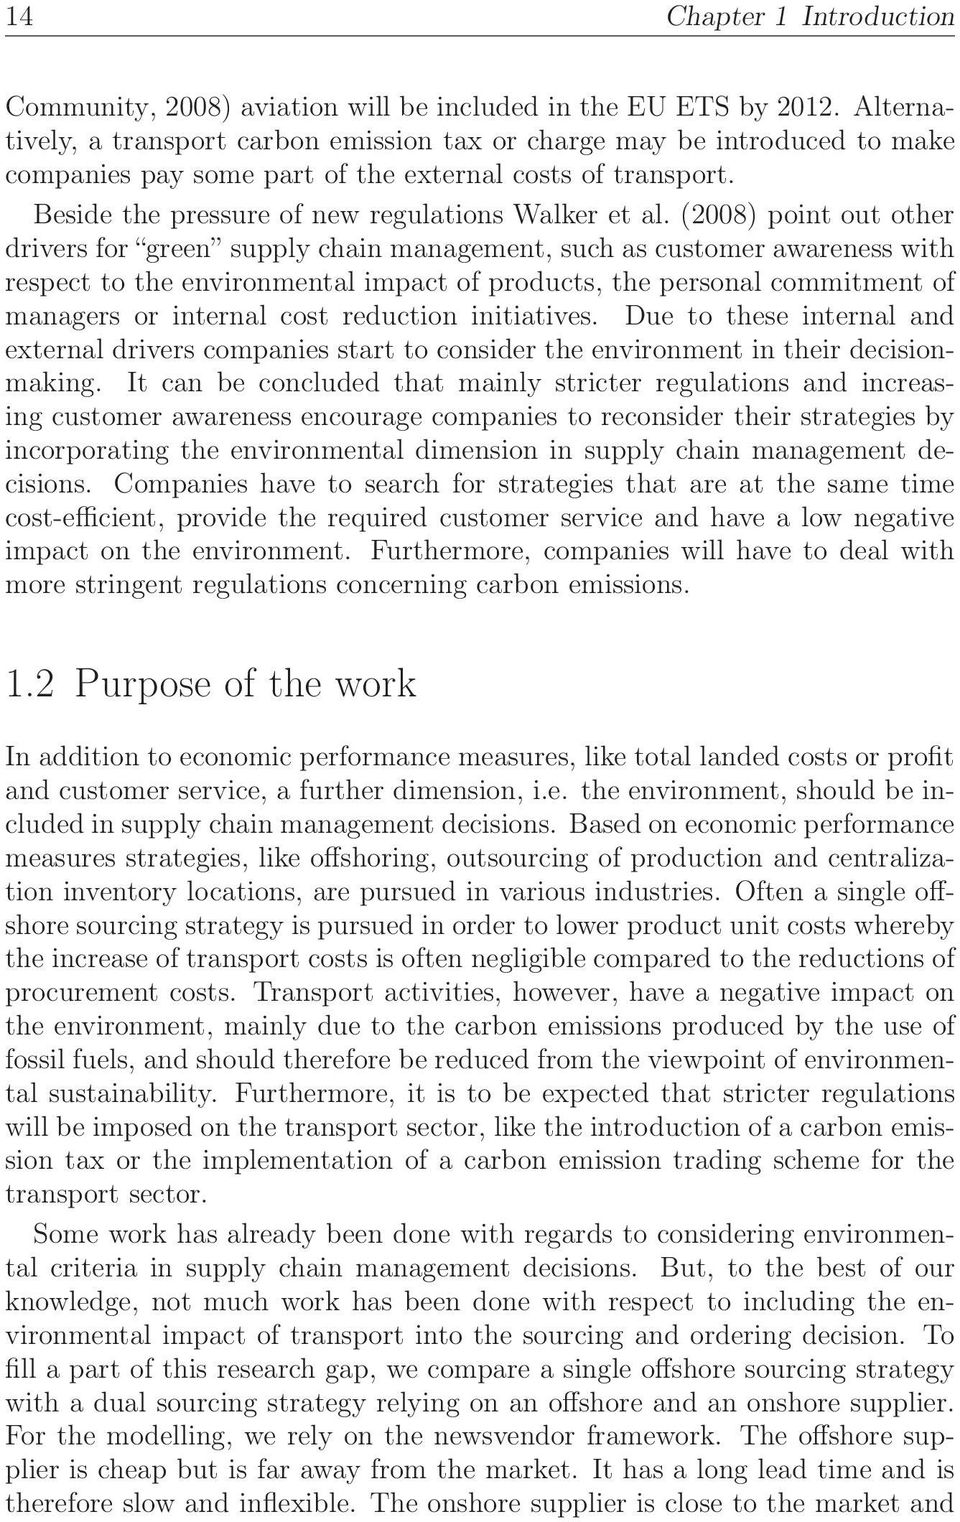 (2008) point out other drivers for green supply chain management, such as customer awareness with respect to the environmental impact of products, the personal commitment of managers or internal cost